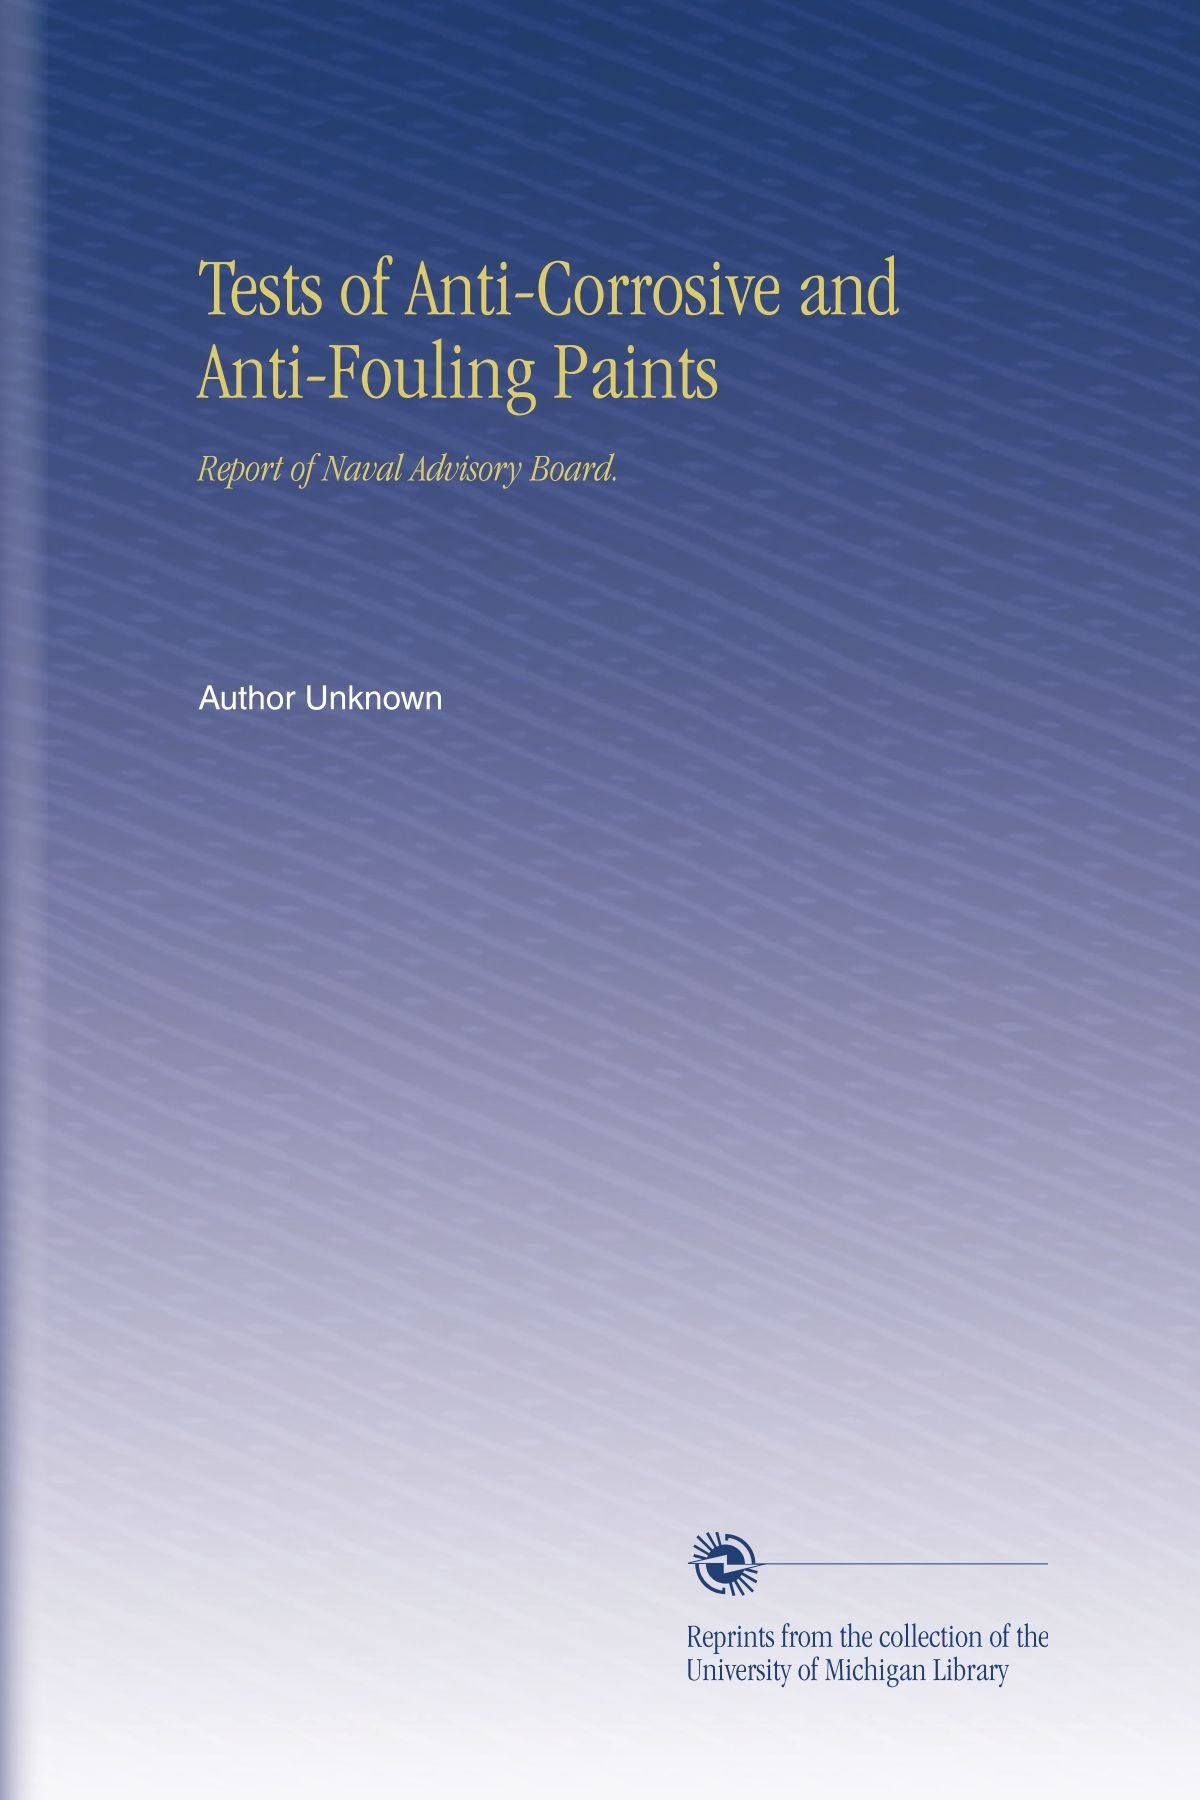 Download Tests of Anti-Corrosive and Anti-Fouling Paints: Report of Naval Advisory Board. ebook